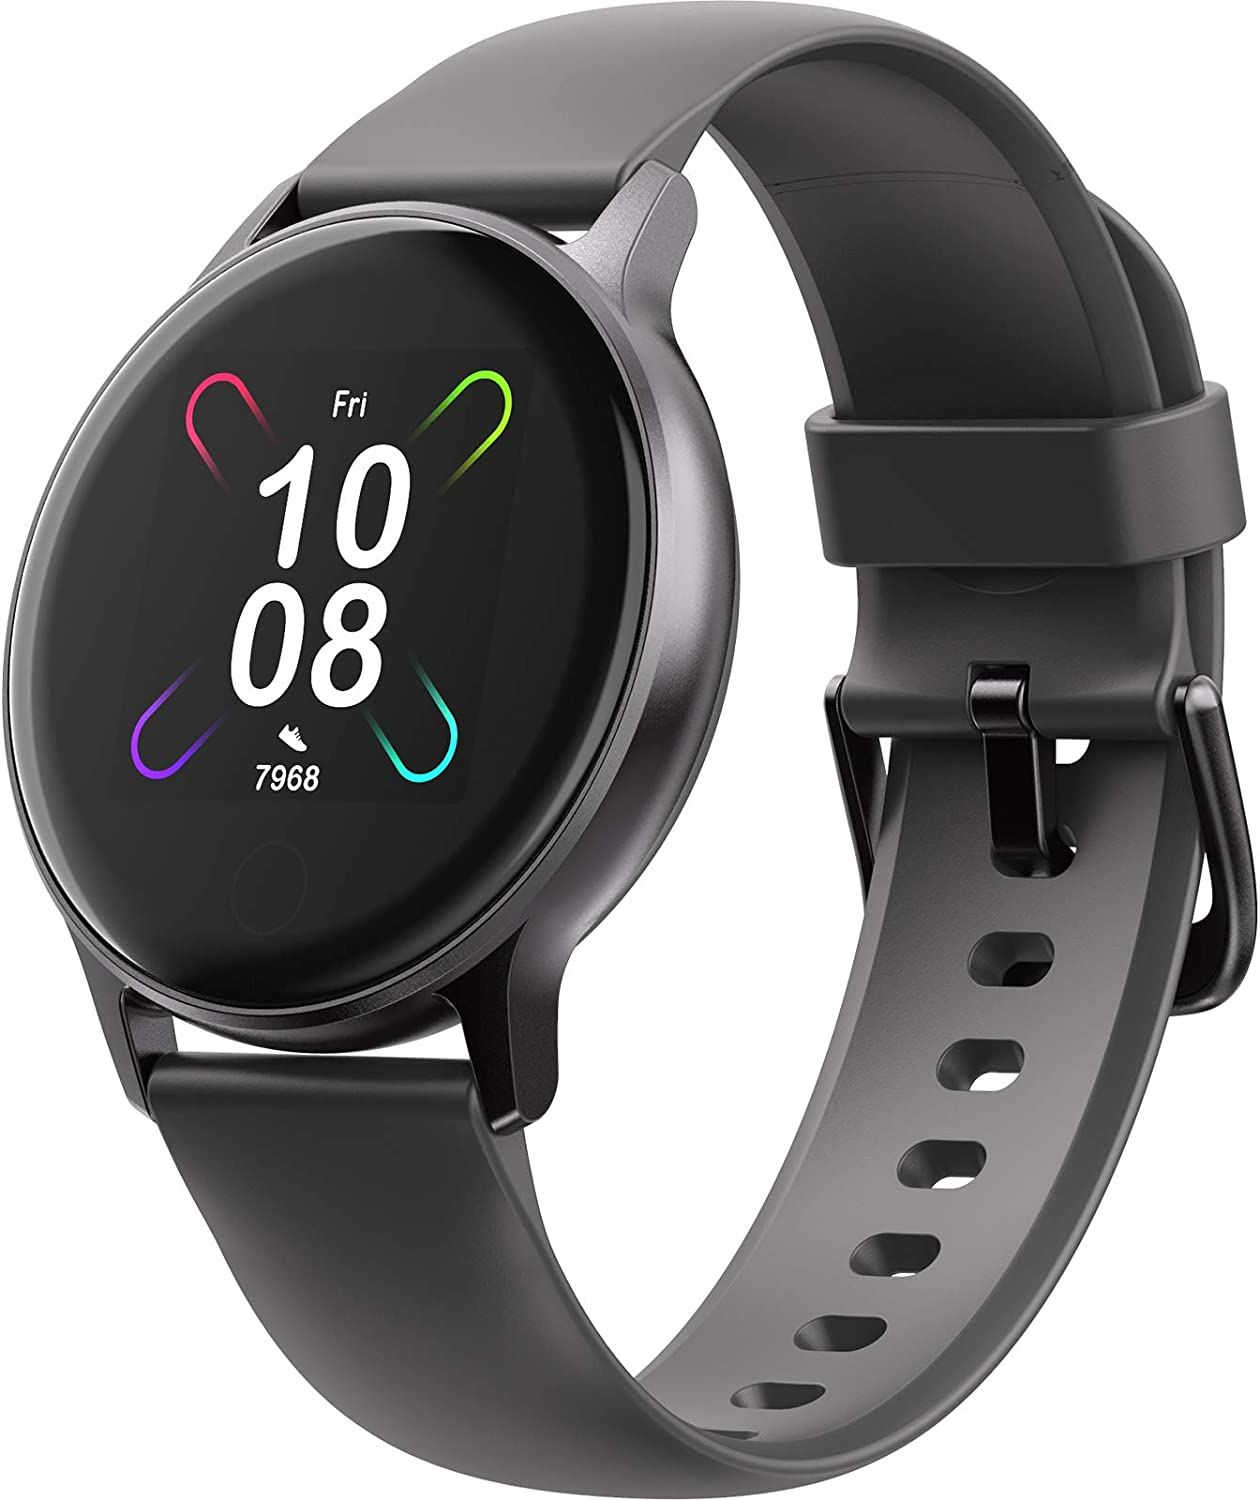 Smart Watch, UMIDIGI Smartwatch with Blood Oxygen Saturation and Heart Rate Monitor, 5ATM Waterproof Smart Watch for Android Phones Compatible with iPhone Samsung.